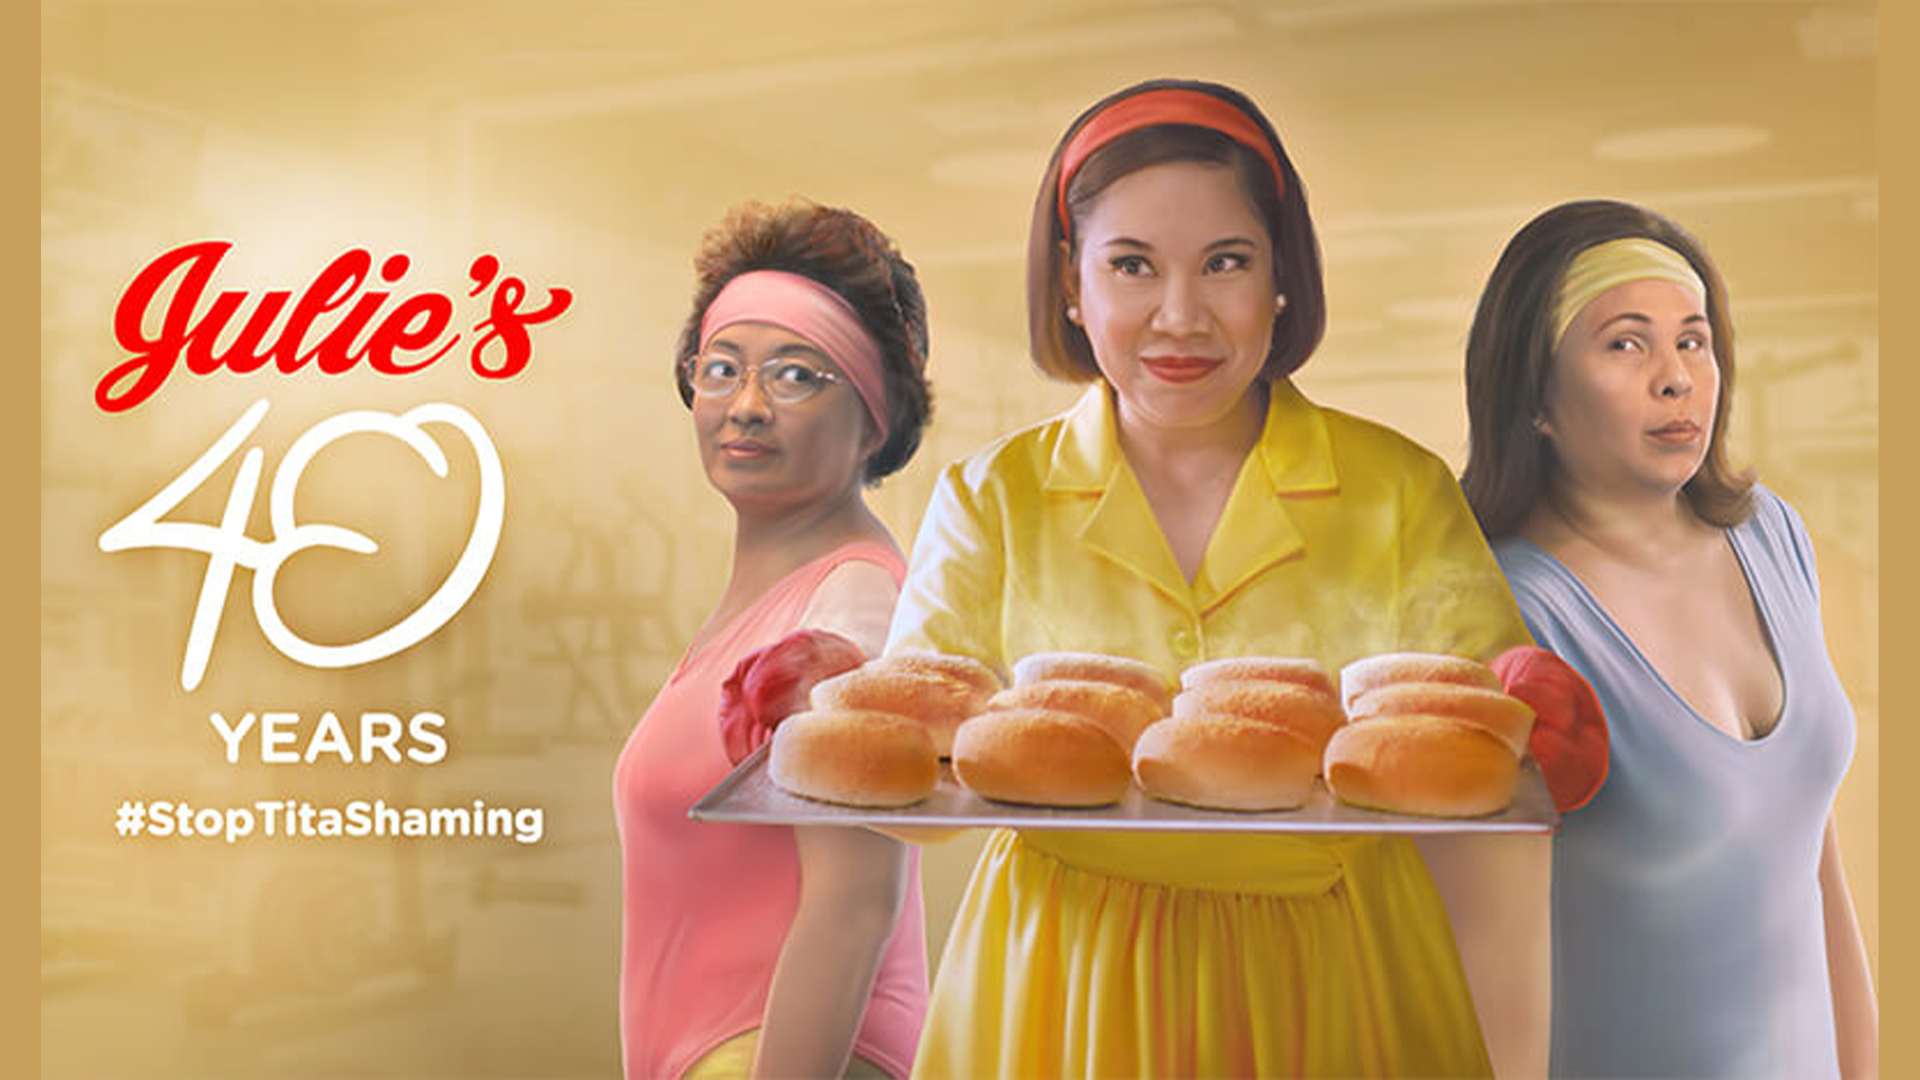 The latest Julie's Bakeshop ad by GIGIL issues a call-to-action- No to Tita shaming